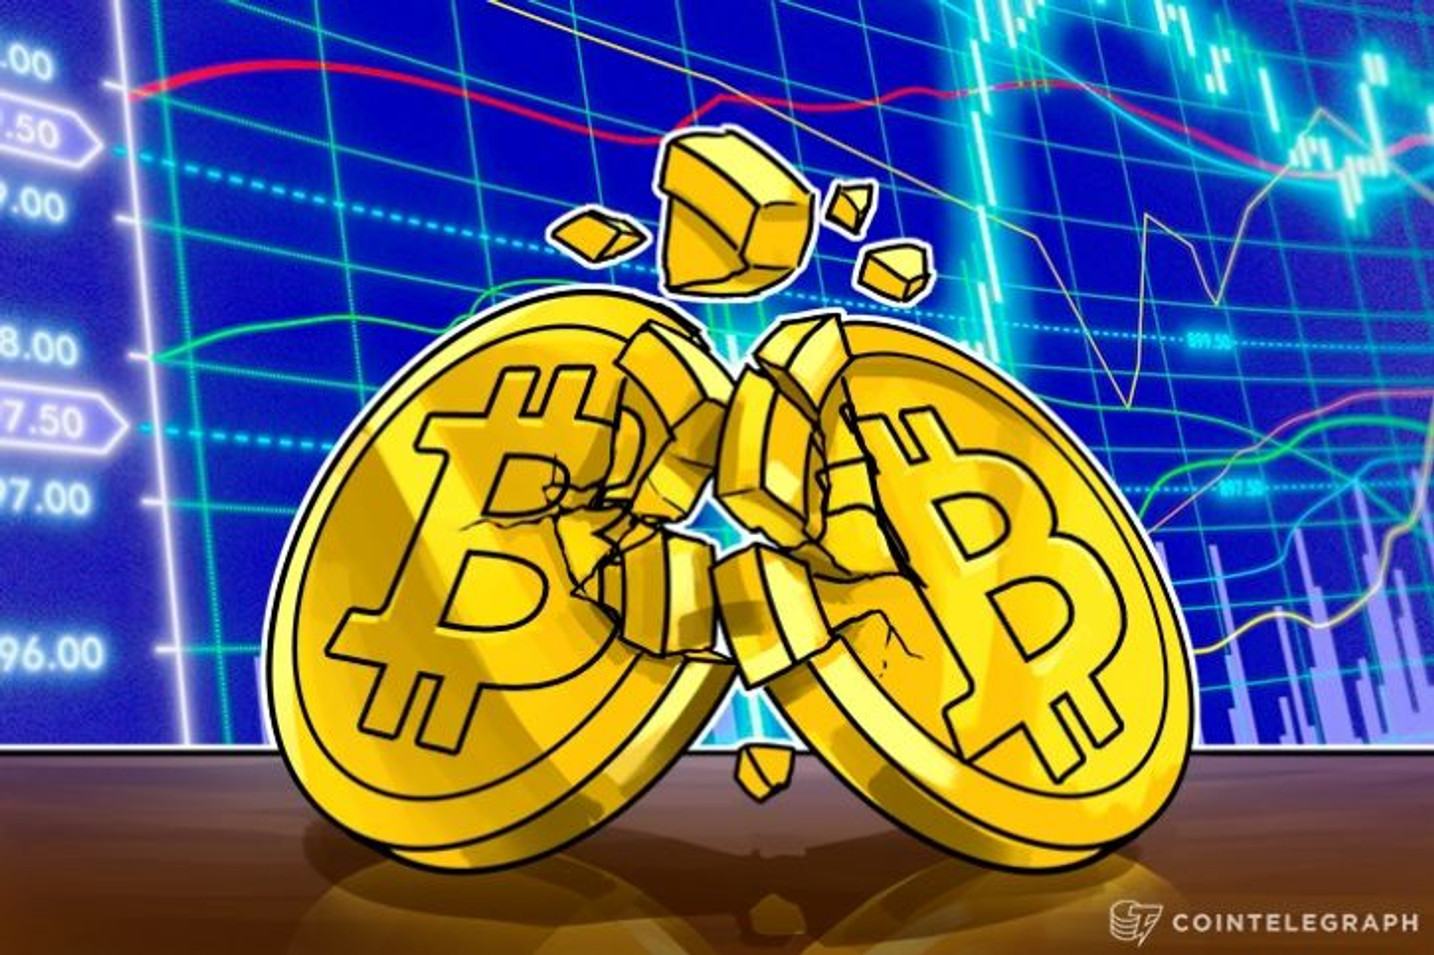 Bitcoin's Price Declines Anew, Hits Three-Week Low